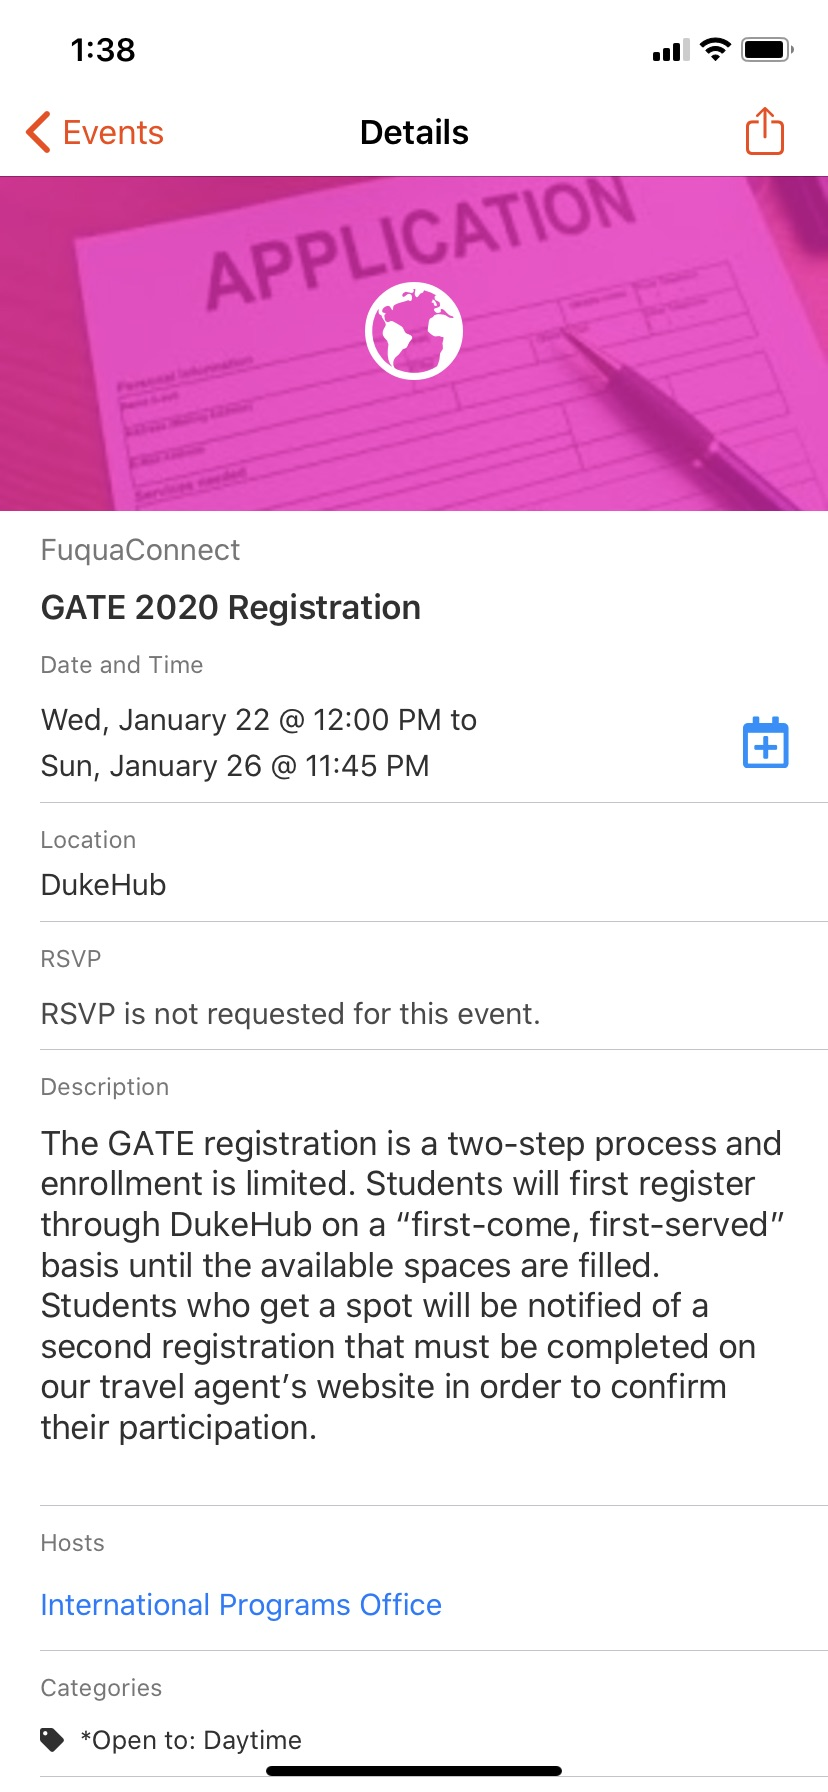 Event details for GATE 2020 Registration on Jan 22, 2020.